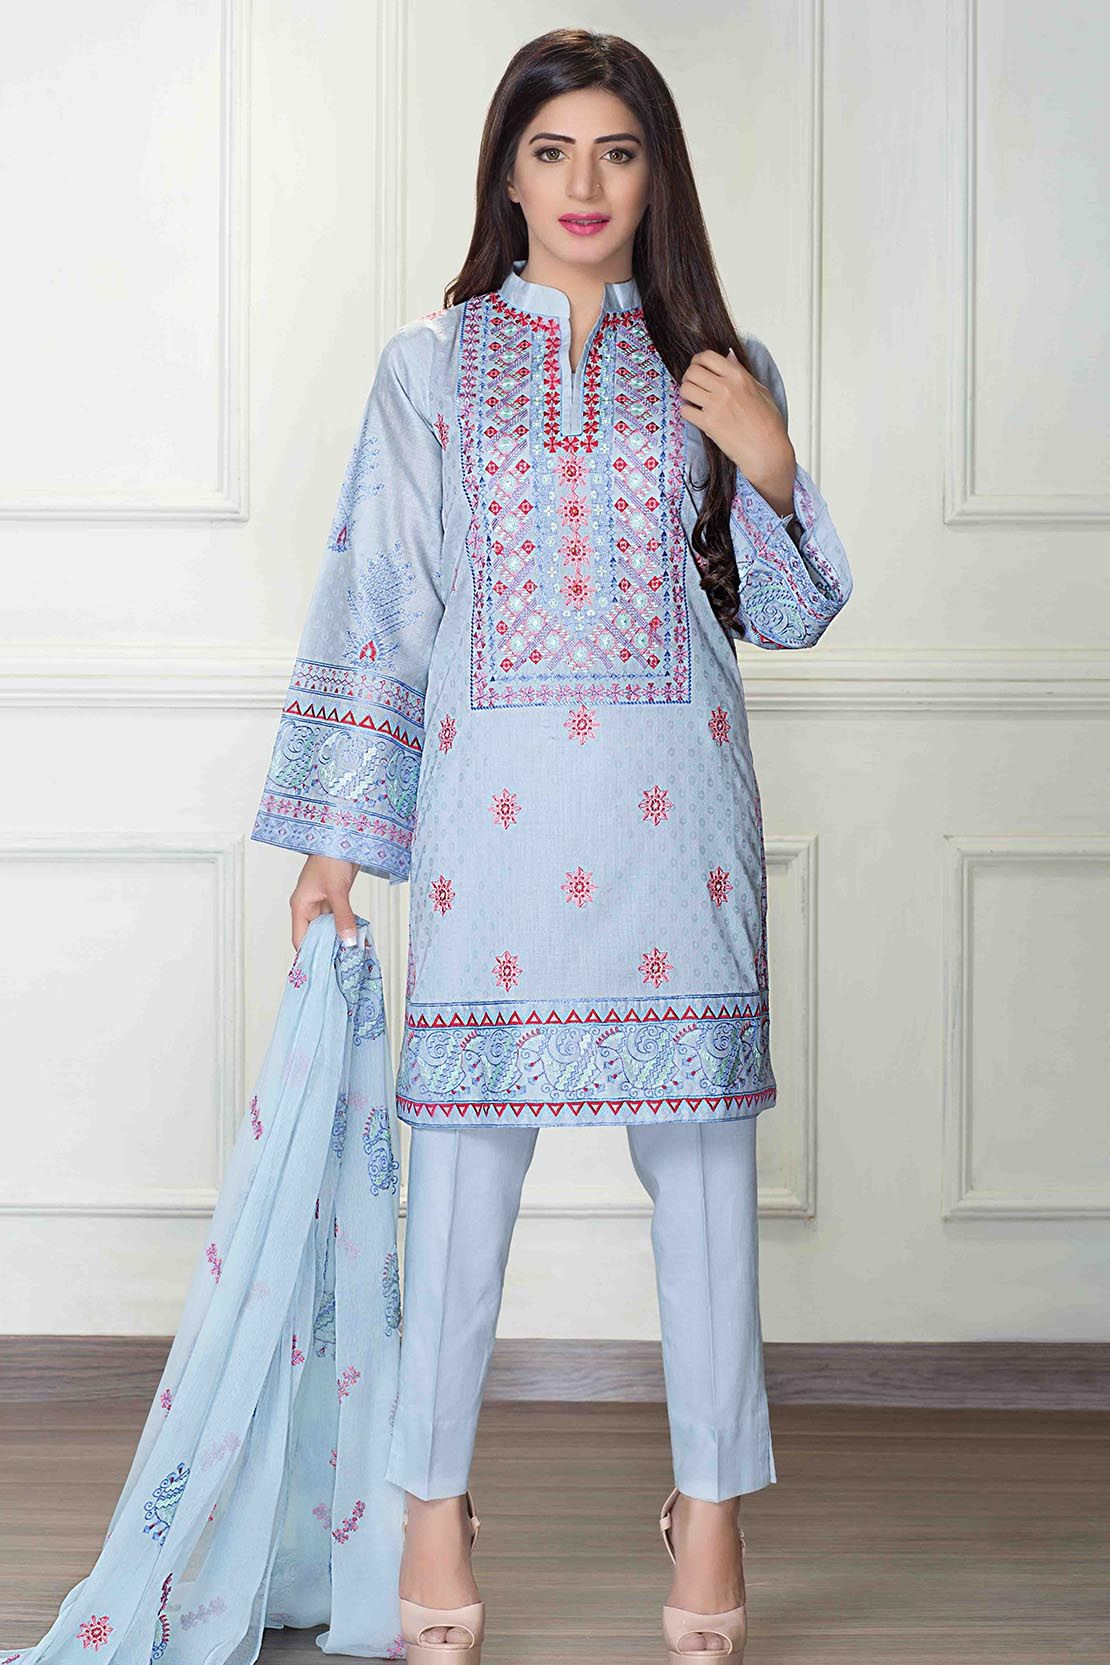 Other Women's Clothing Clothing, Shoes & Accessories Bright Blue Pakistani Designer Sharara Suit Traditional Suit Fancy Trendy Dress Suit Exquisite Traditional Embroidery Art